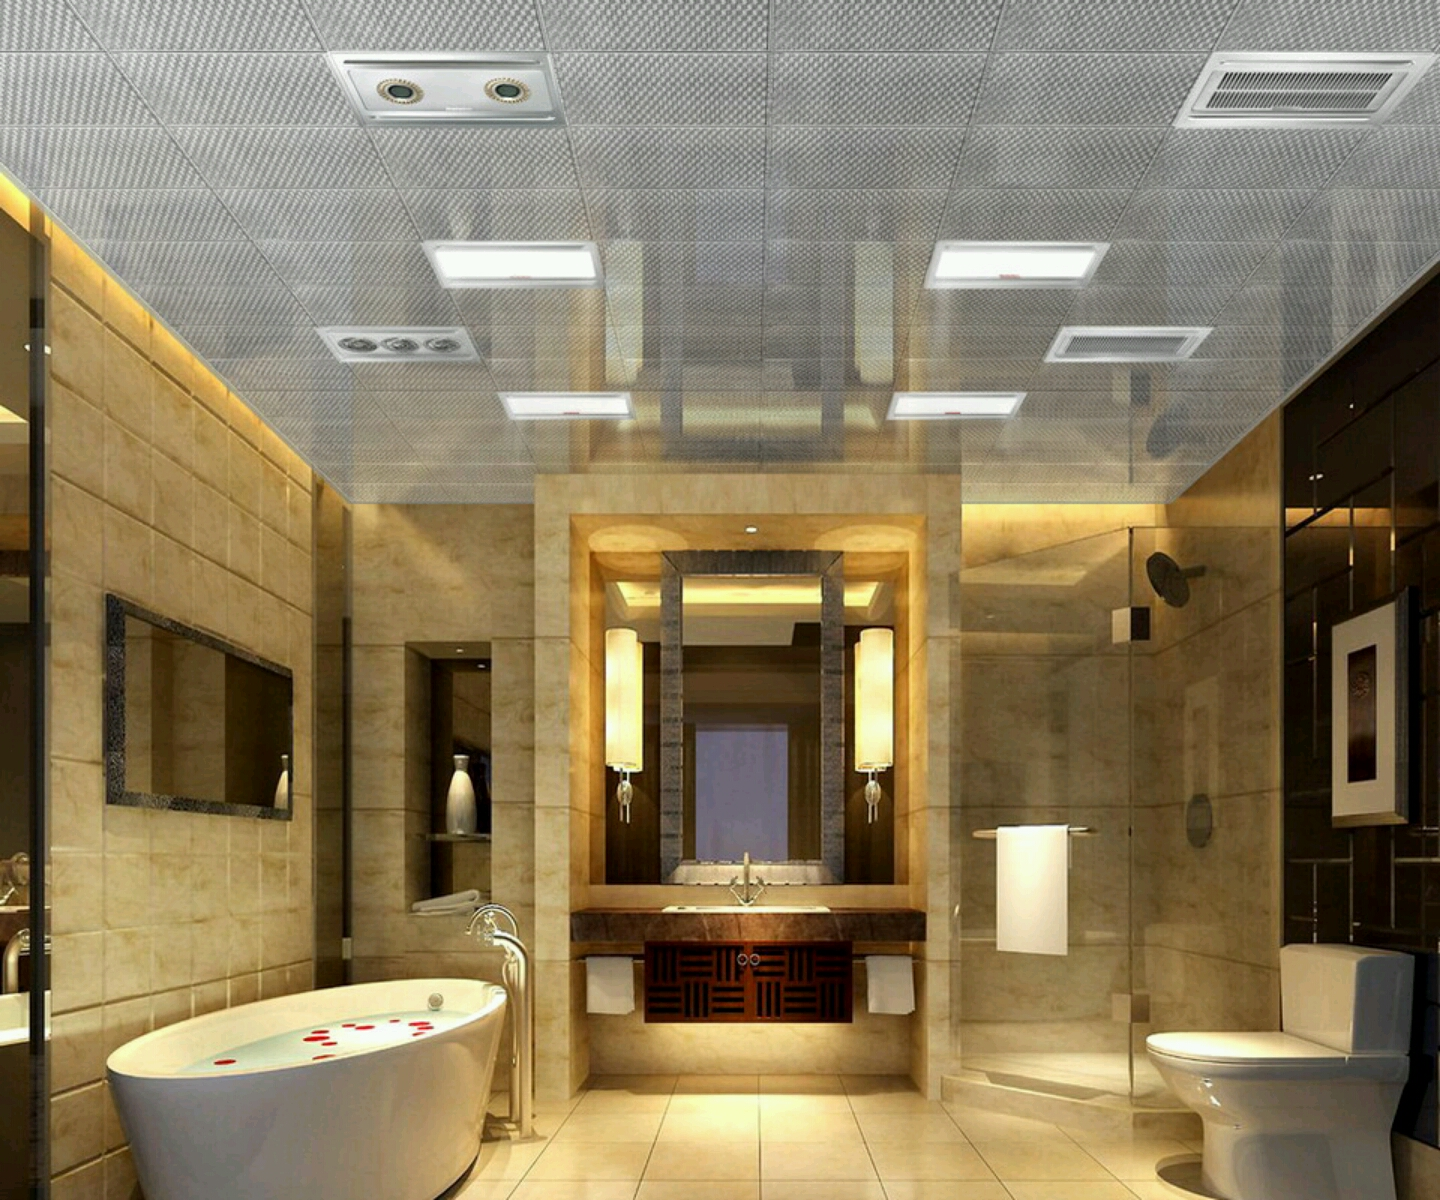 New home designs latest luxury bathrooms designs ideas for New home bathroom design